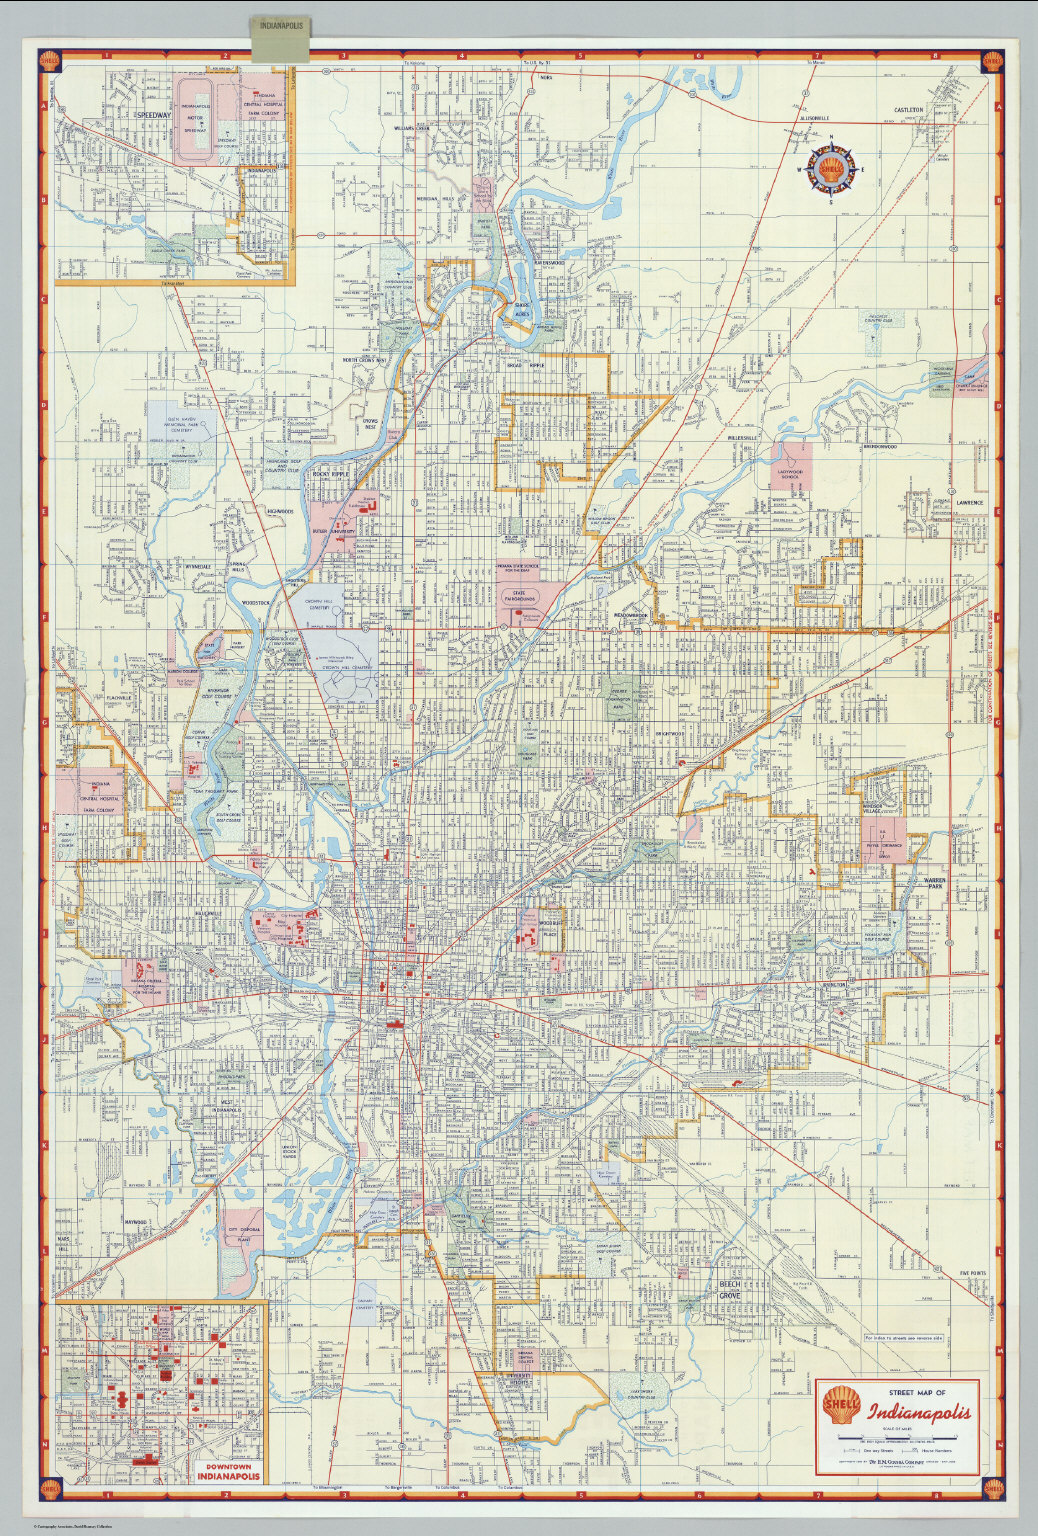 S Street Map of Indianapolis. - David Rumsey Historical ... on ohio map, fort wayne map, phoenix map, st paul map, north carolina map, indiana map, broad ripple map, castleton in map, usa map, united states map, oklahoma city map, kansas city map, albany map, georgia map, shelbyville in map, chicago map, virginia map, terre haute map, kentucky map, illinois map,